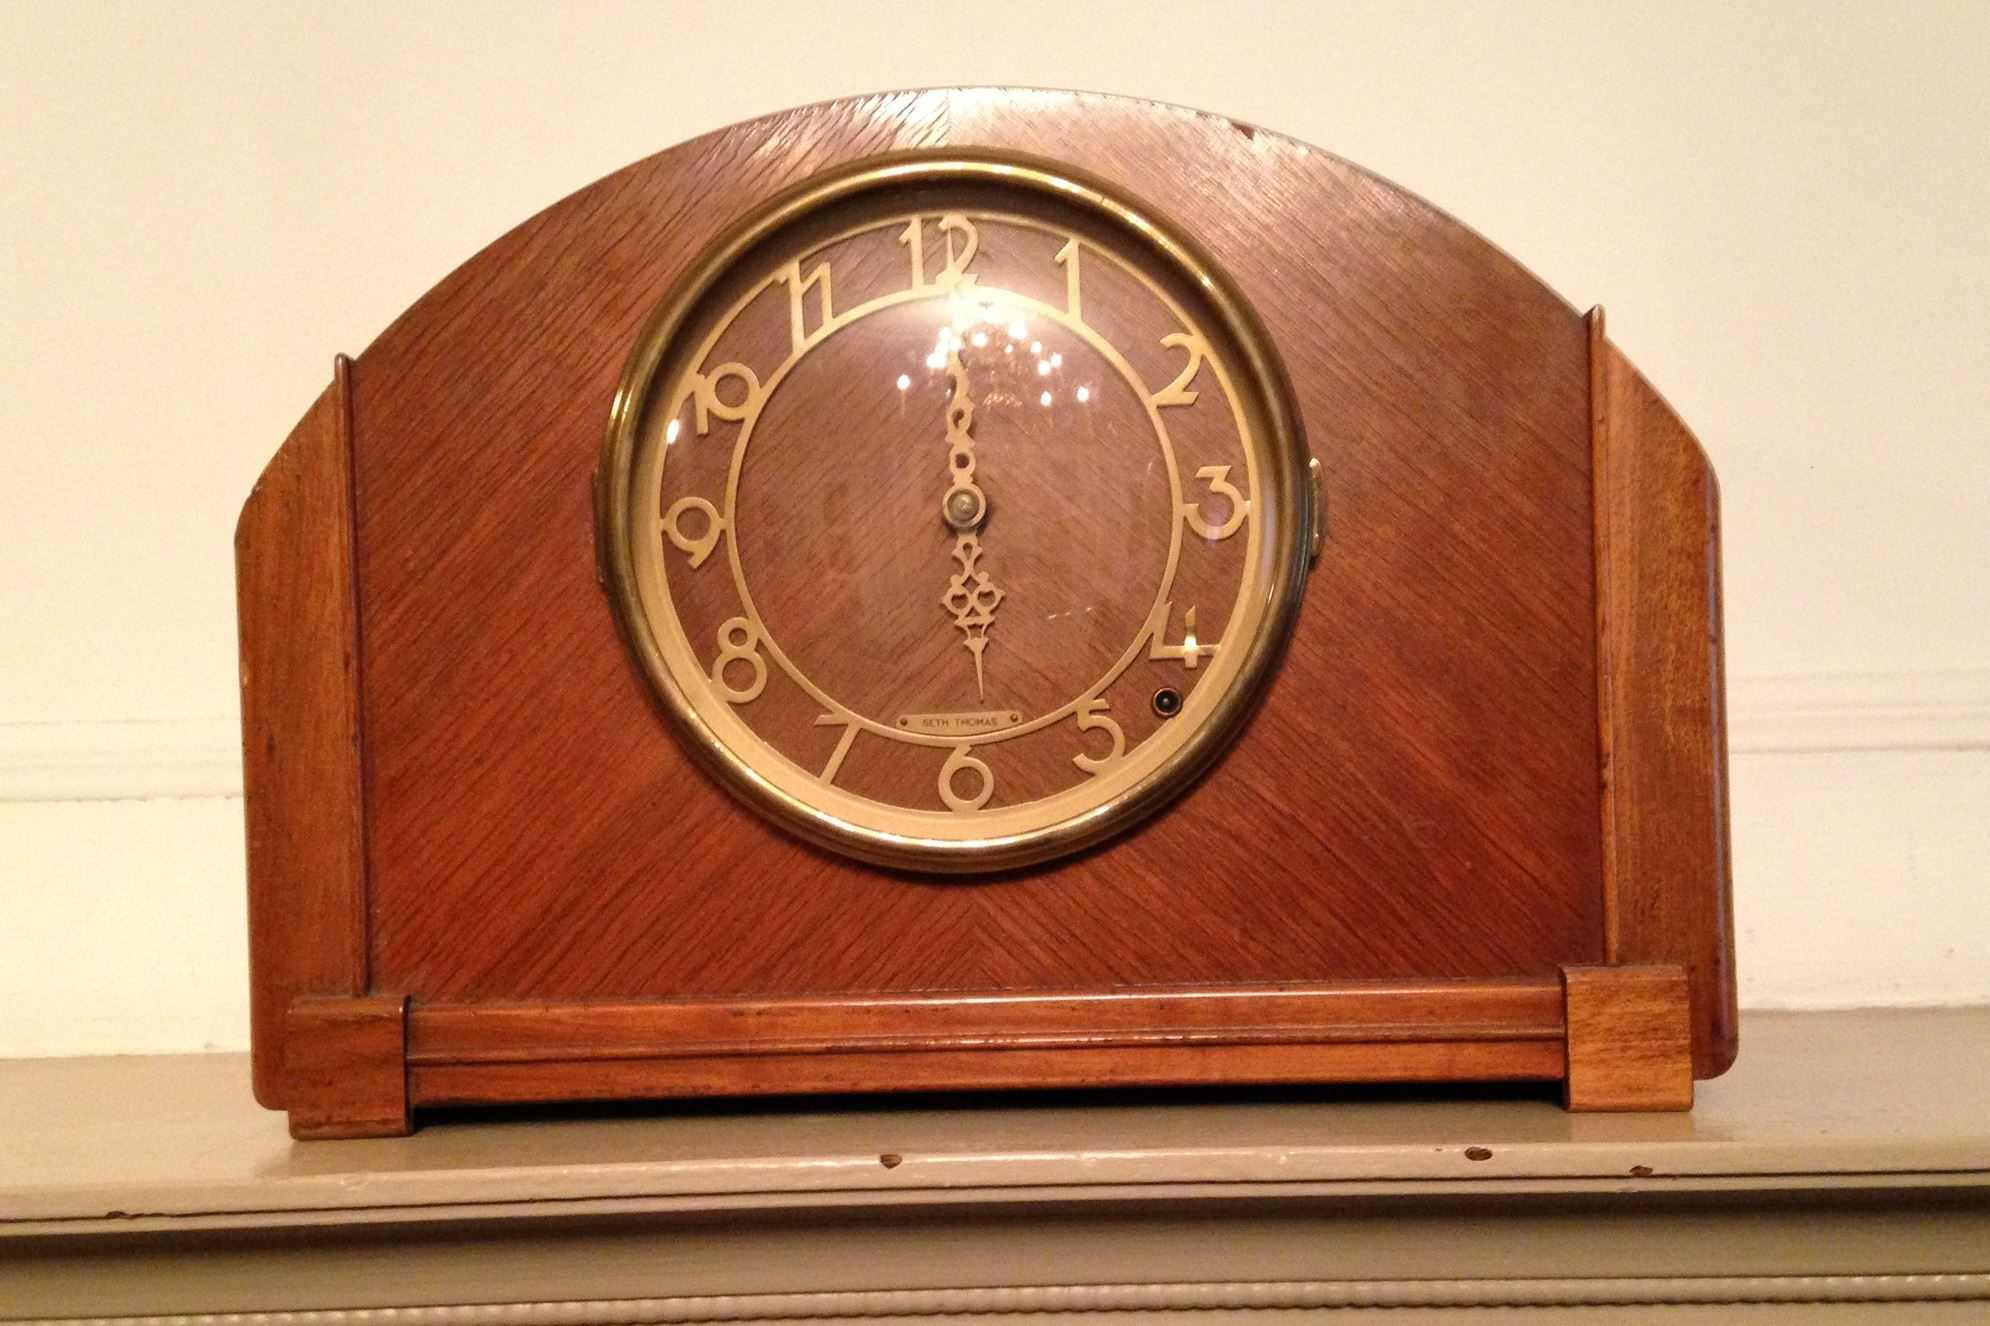 A photo of the Seth Thomas clock that was reported missing from the mayor's office and was later found in the City-County Building..